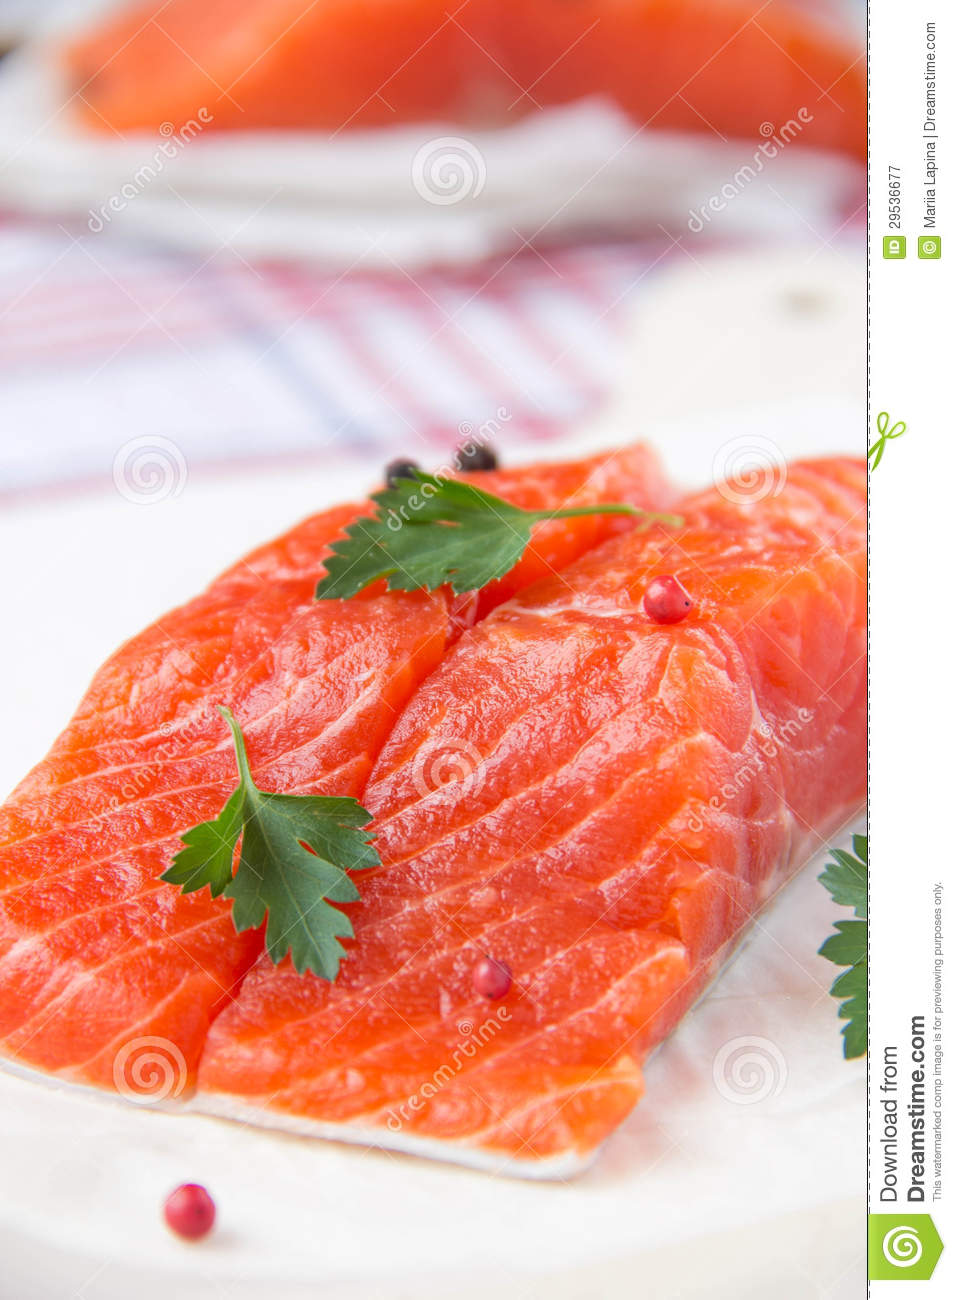 Fillet of red fish royalty free stock photography image for Red fish fillet